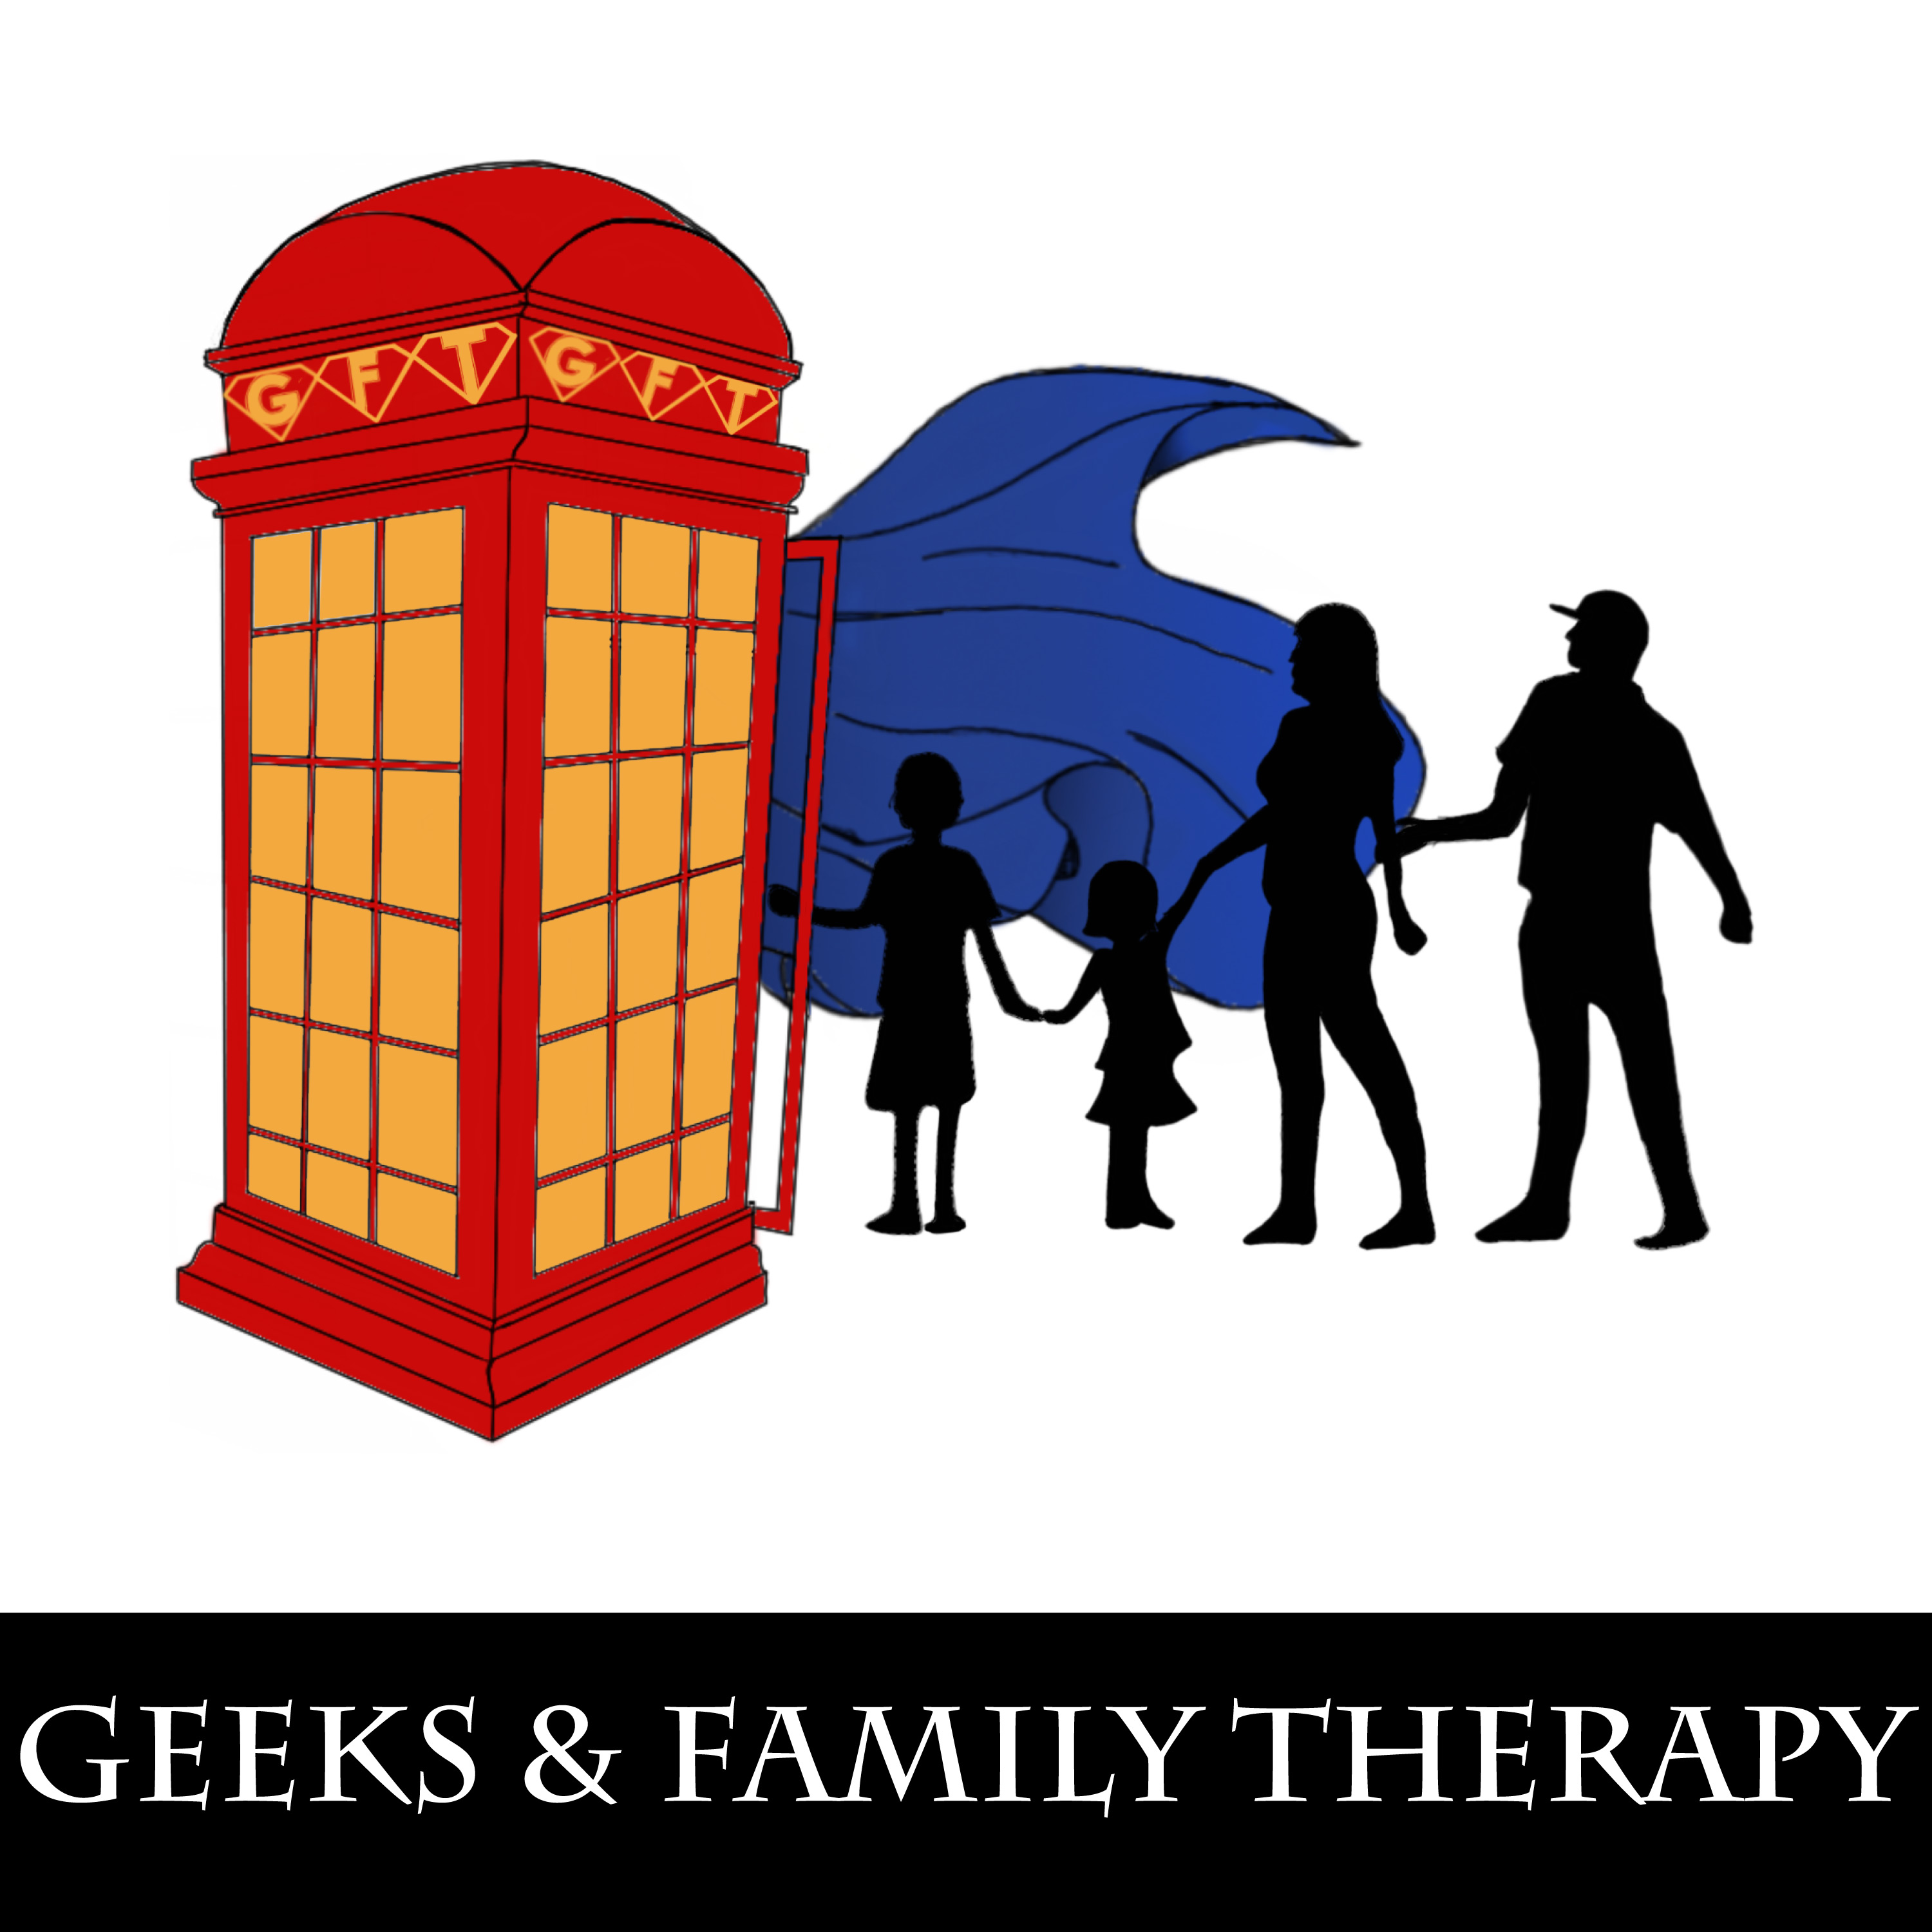 Geeks & Family Therapy